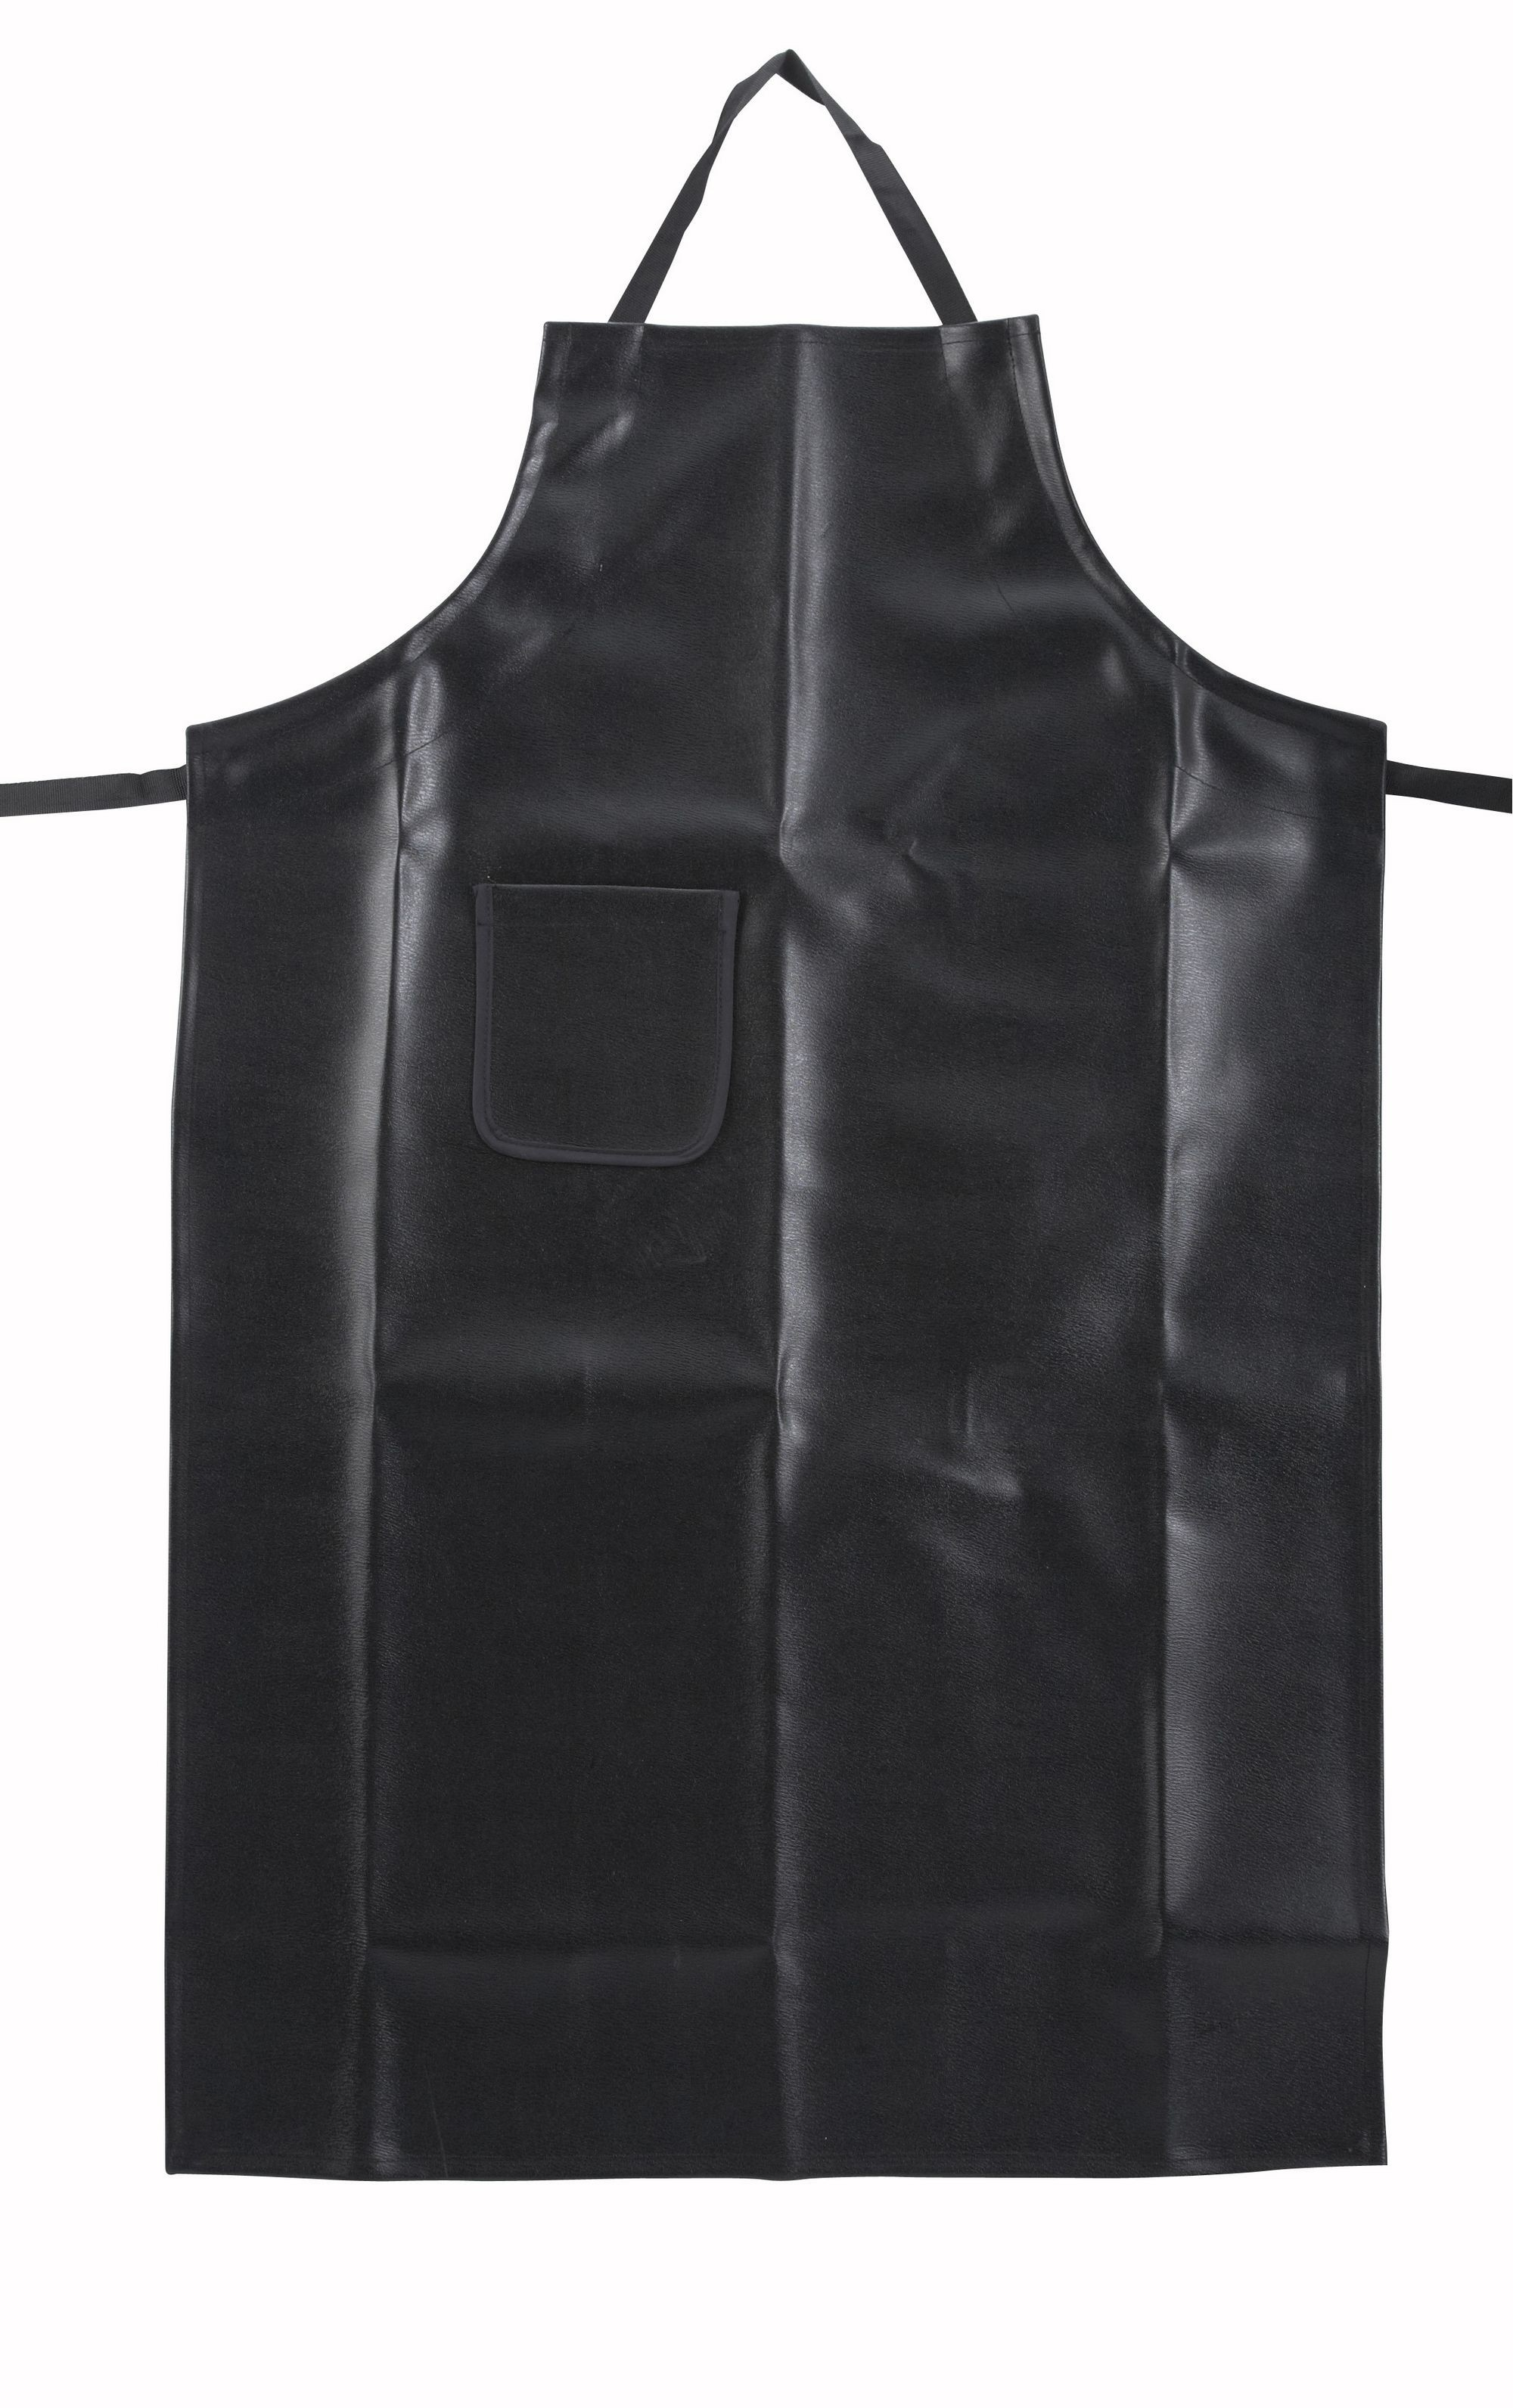 "Winco BA-HN Full Length Heavy Naugahyde Bib Apron 41-1/4"" x 26-1/2"""